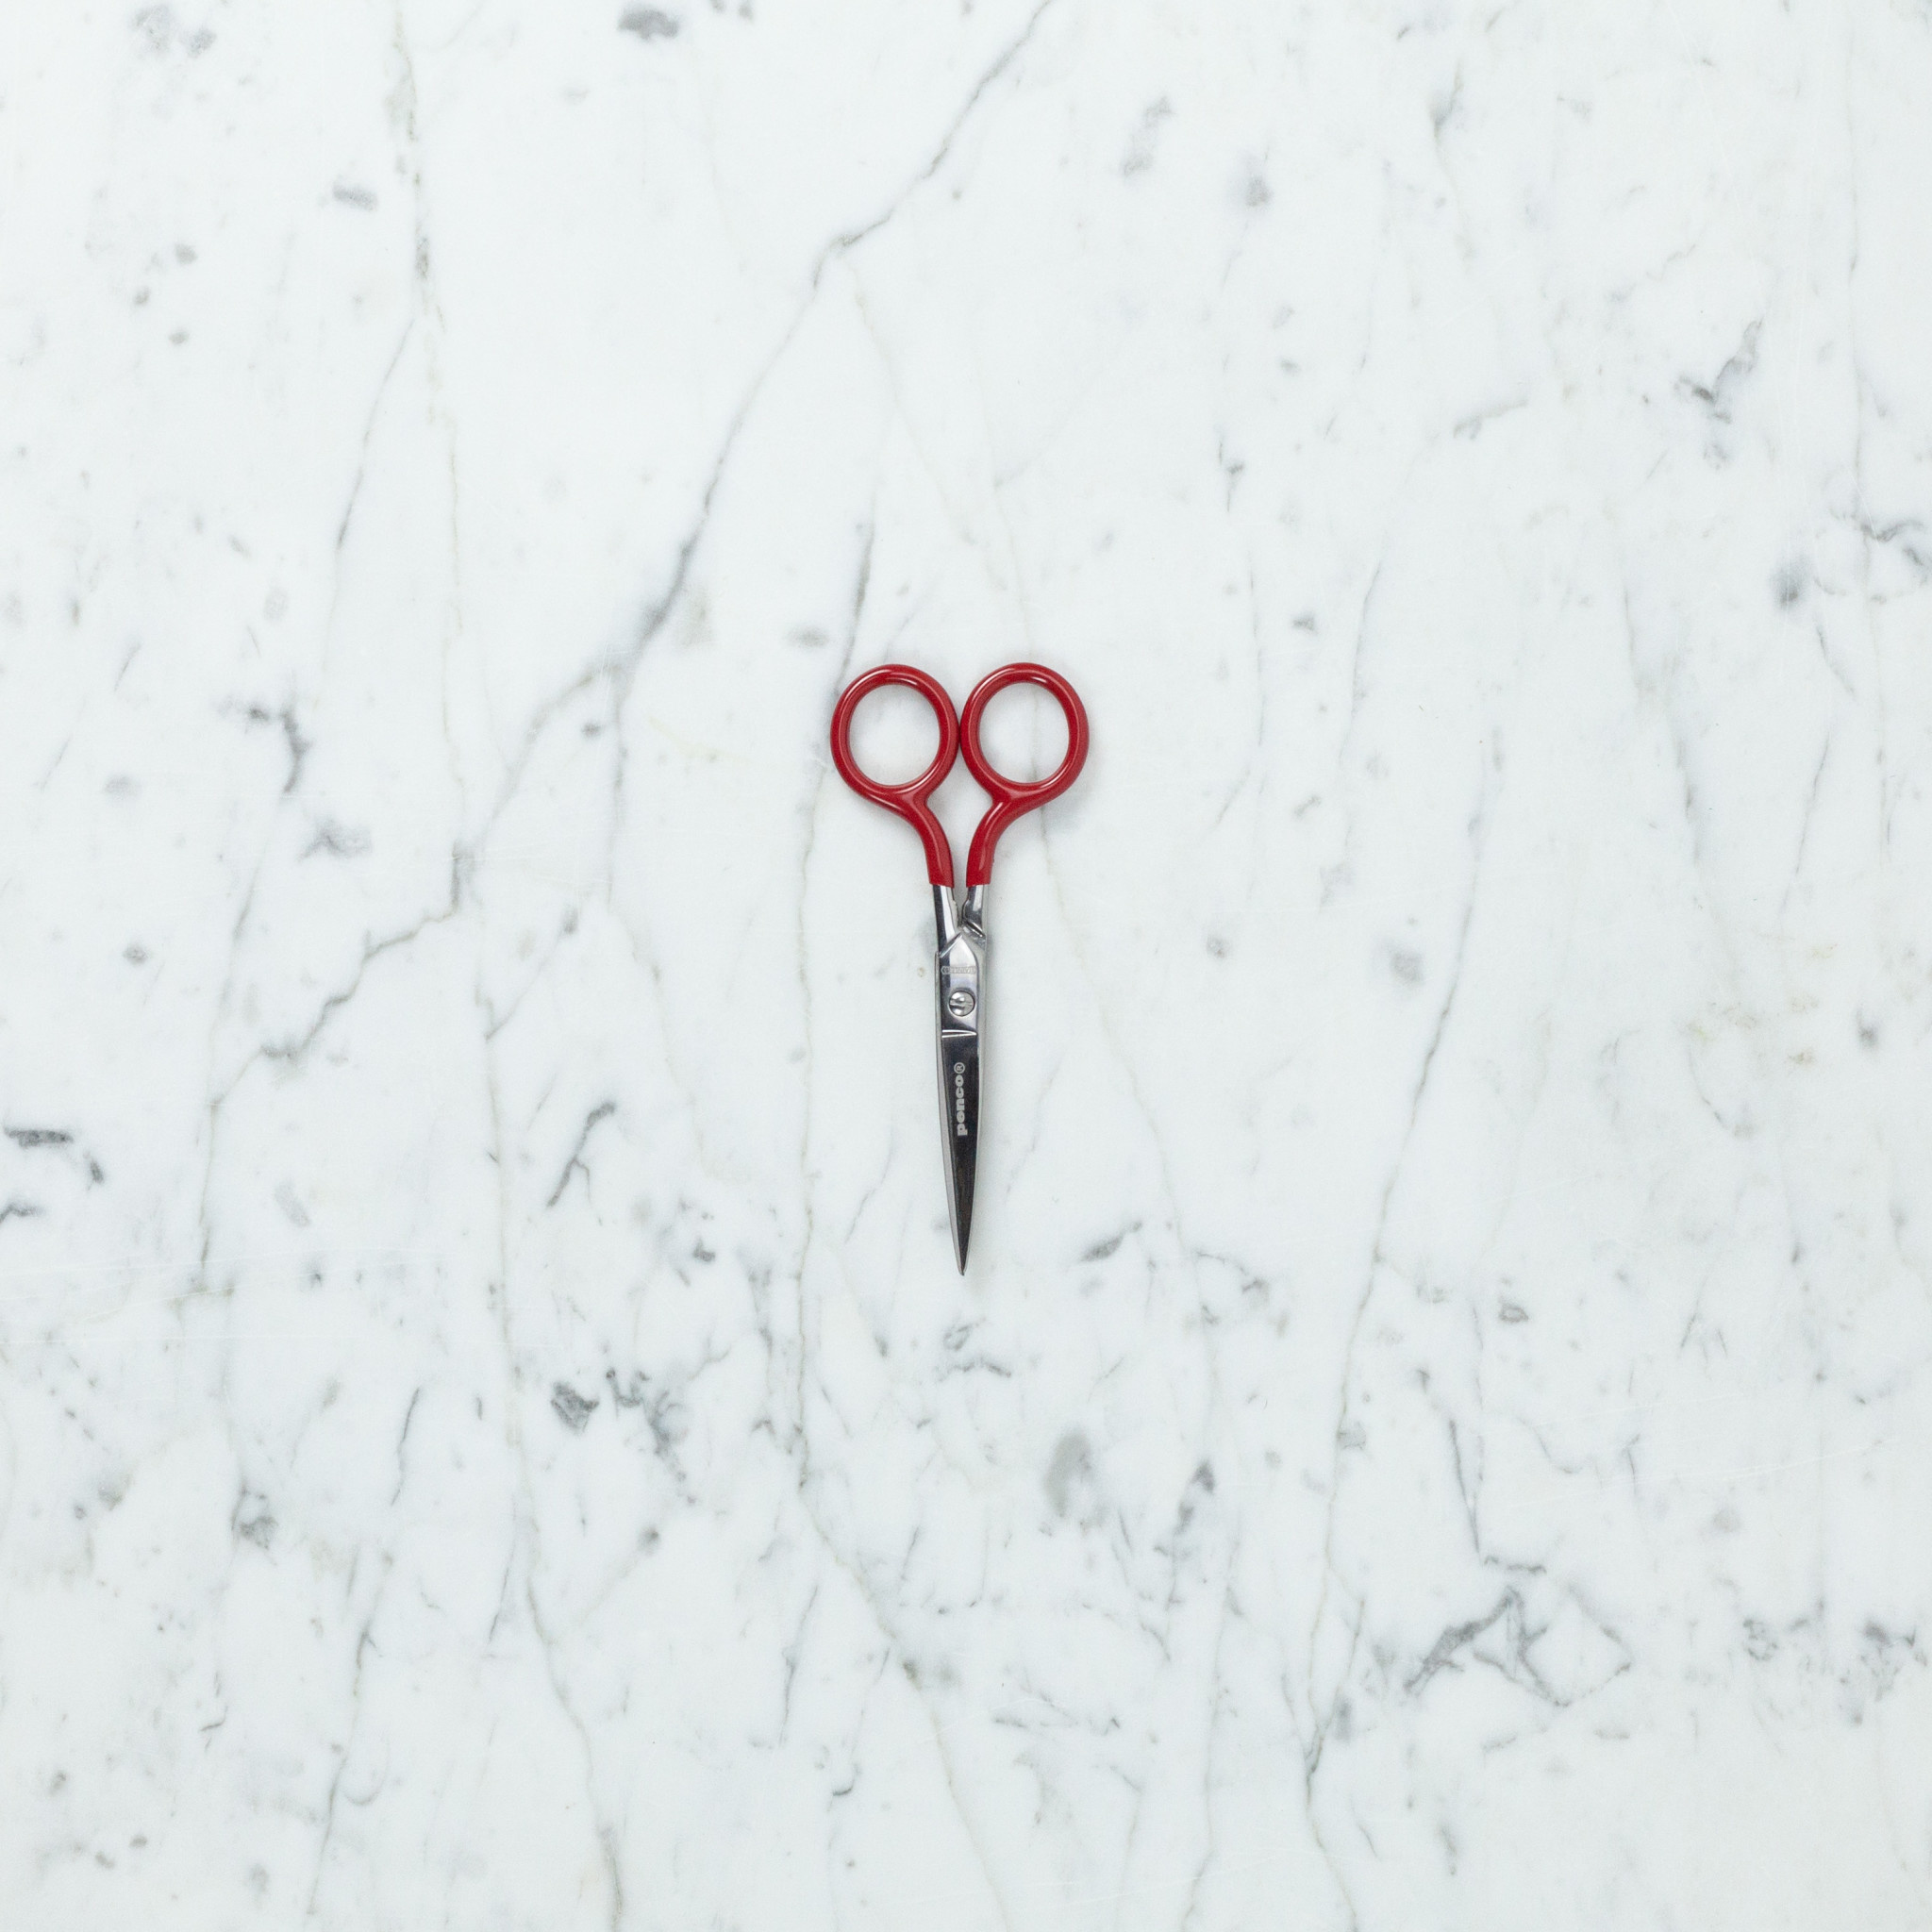 """Little Stainless Scissors with Red Grip Handles - 5"""""""